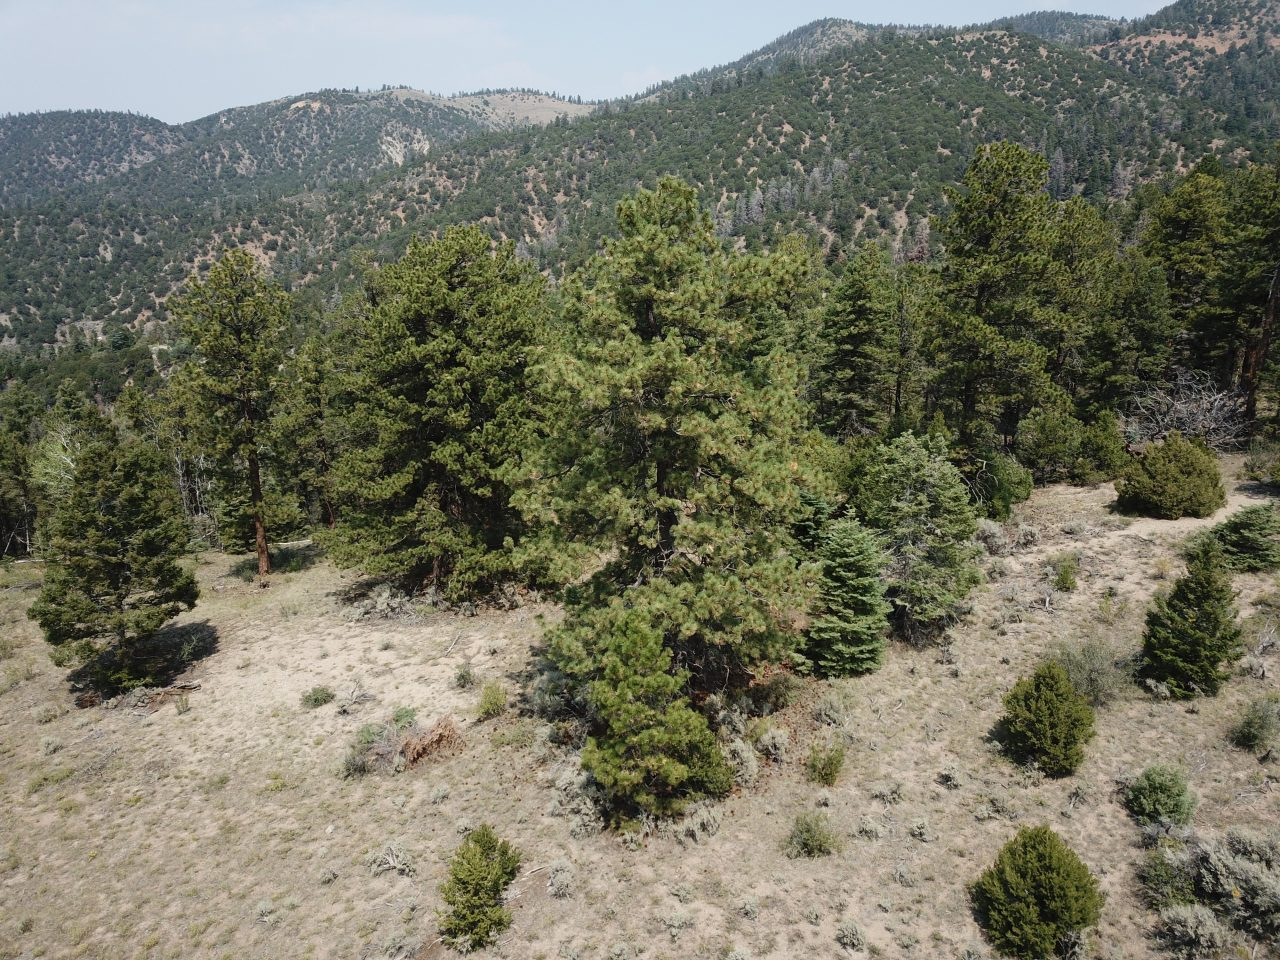 SOLD -> Gorgeous Mountain Views! 5.9 Mountainside, Pine-Covered Acres in the Sangre de Cristo Ranches